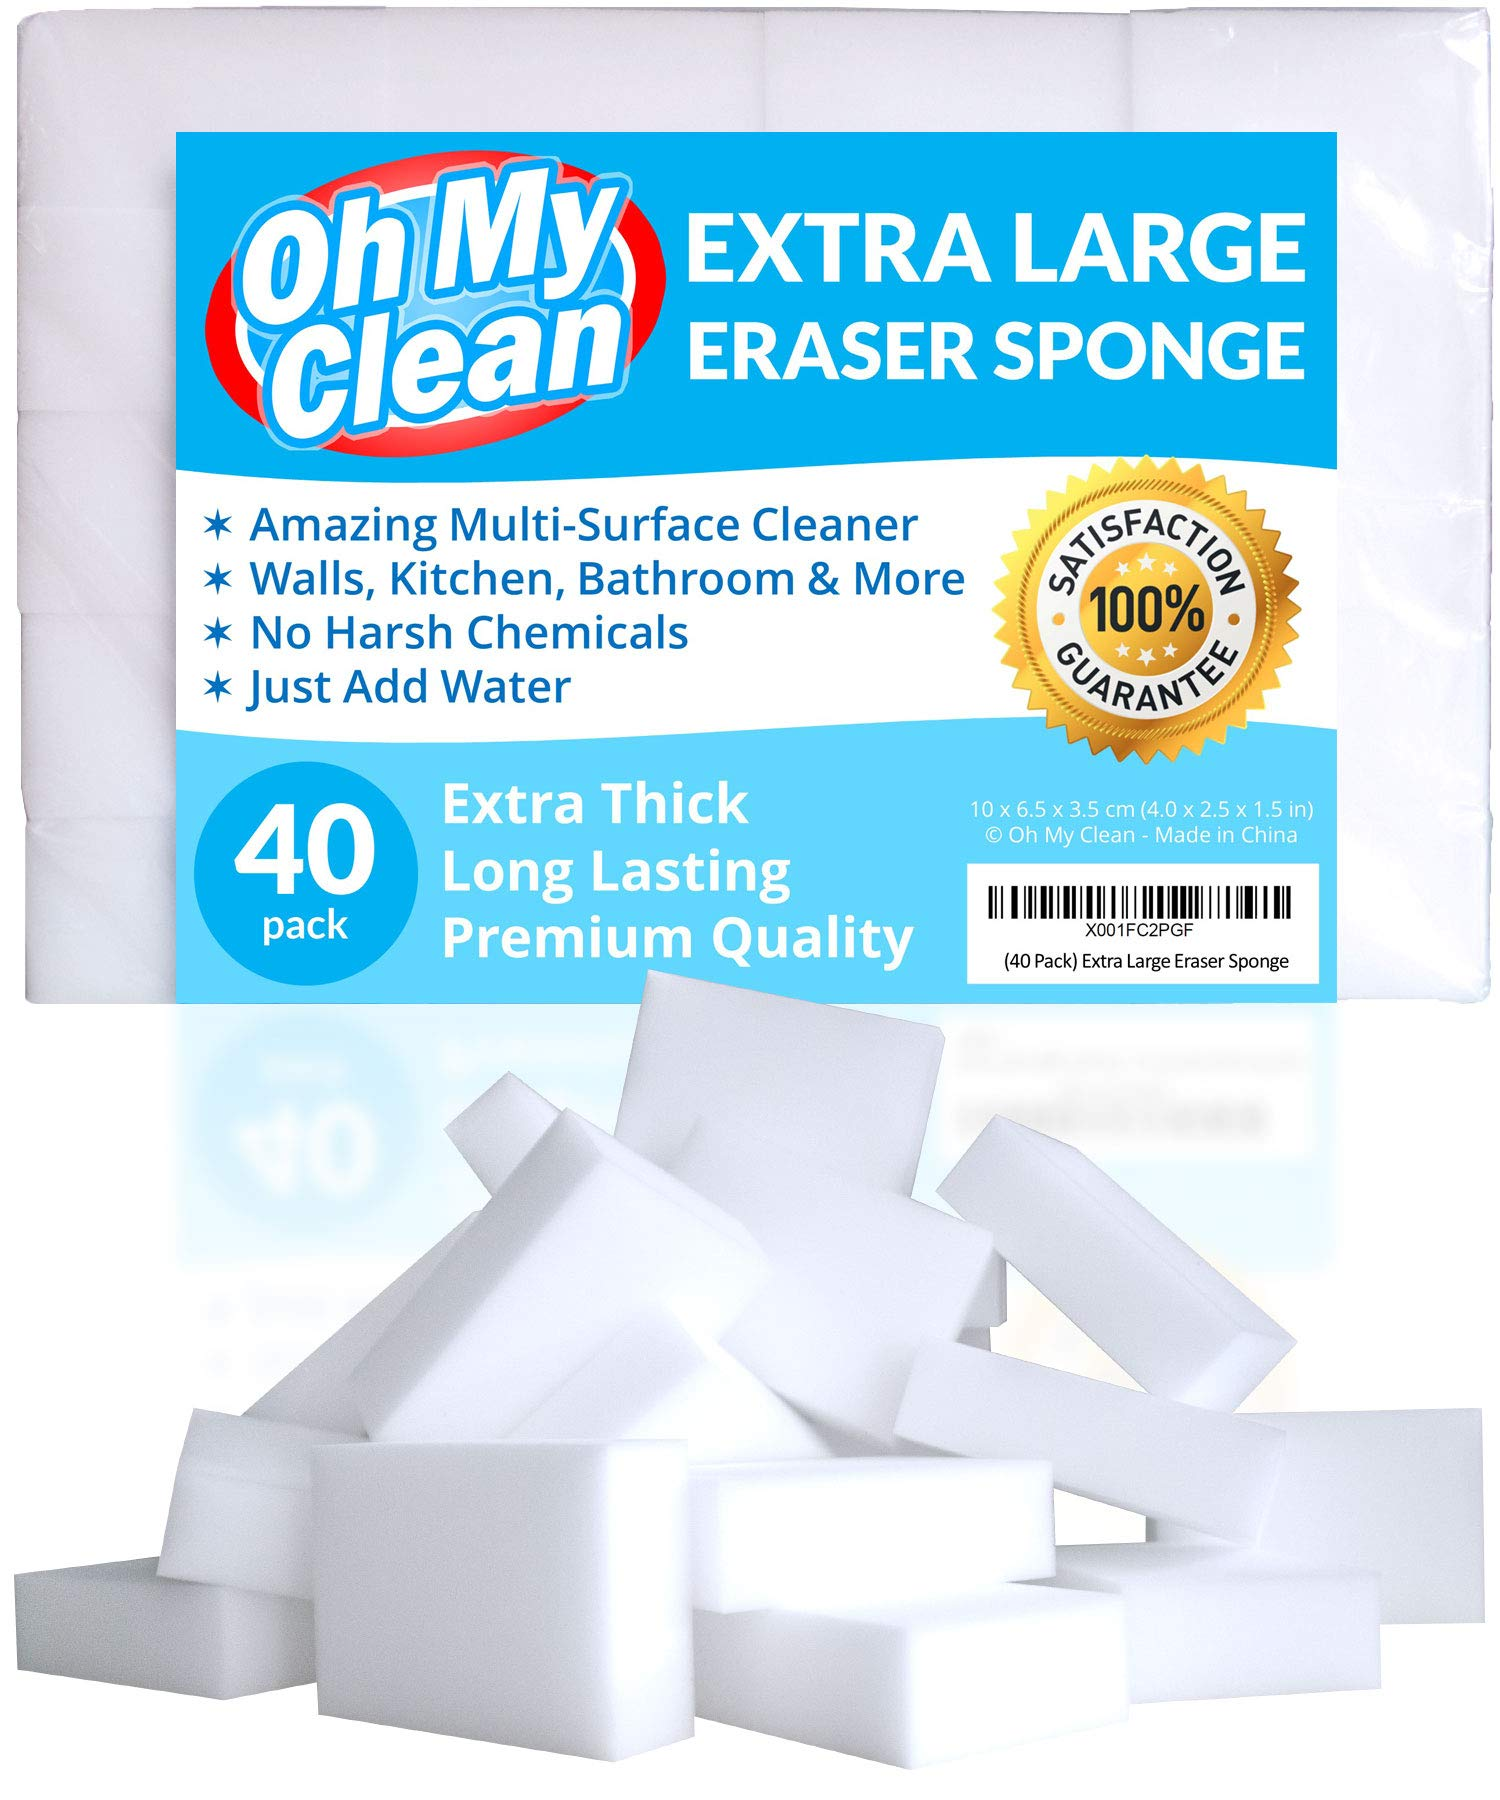 (40 Pack) Extra Large Eraser Sponge - Extra Thick, Long Lasting, Premium Melamine Sponges in Bulk - Multi Surface Power Scrubber Foam Cleaning Pads - Bathtub, Floor, Baseboard, Bathroom, Wall Cleaner by Oh My Clean